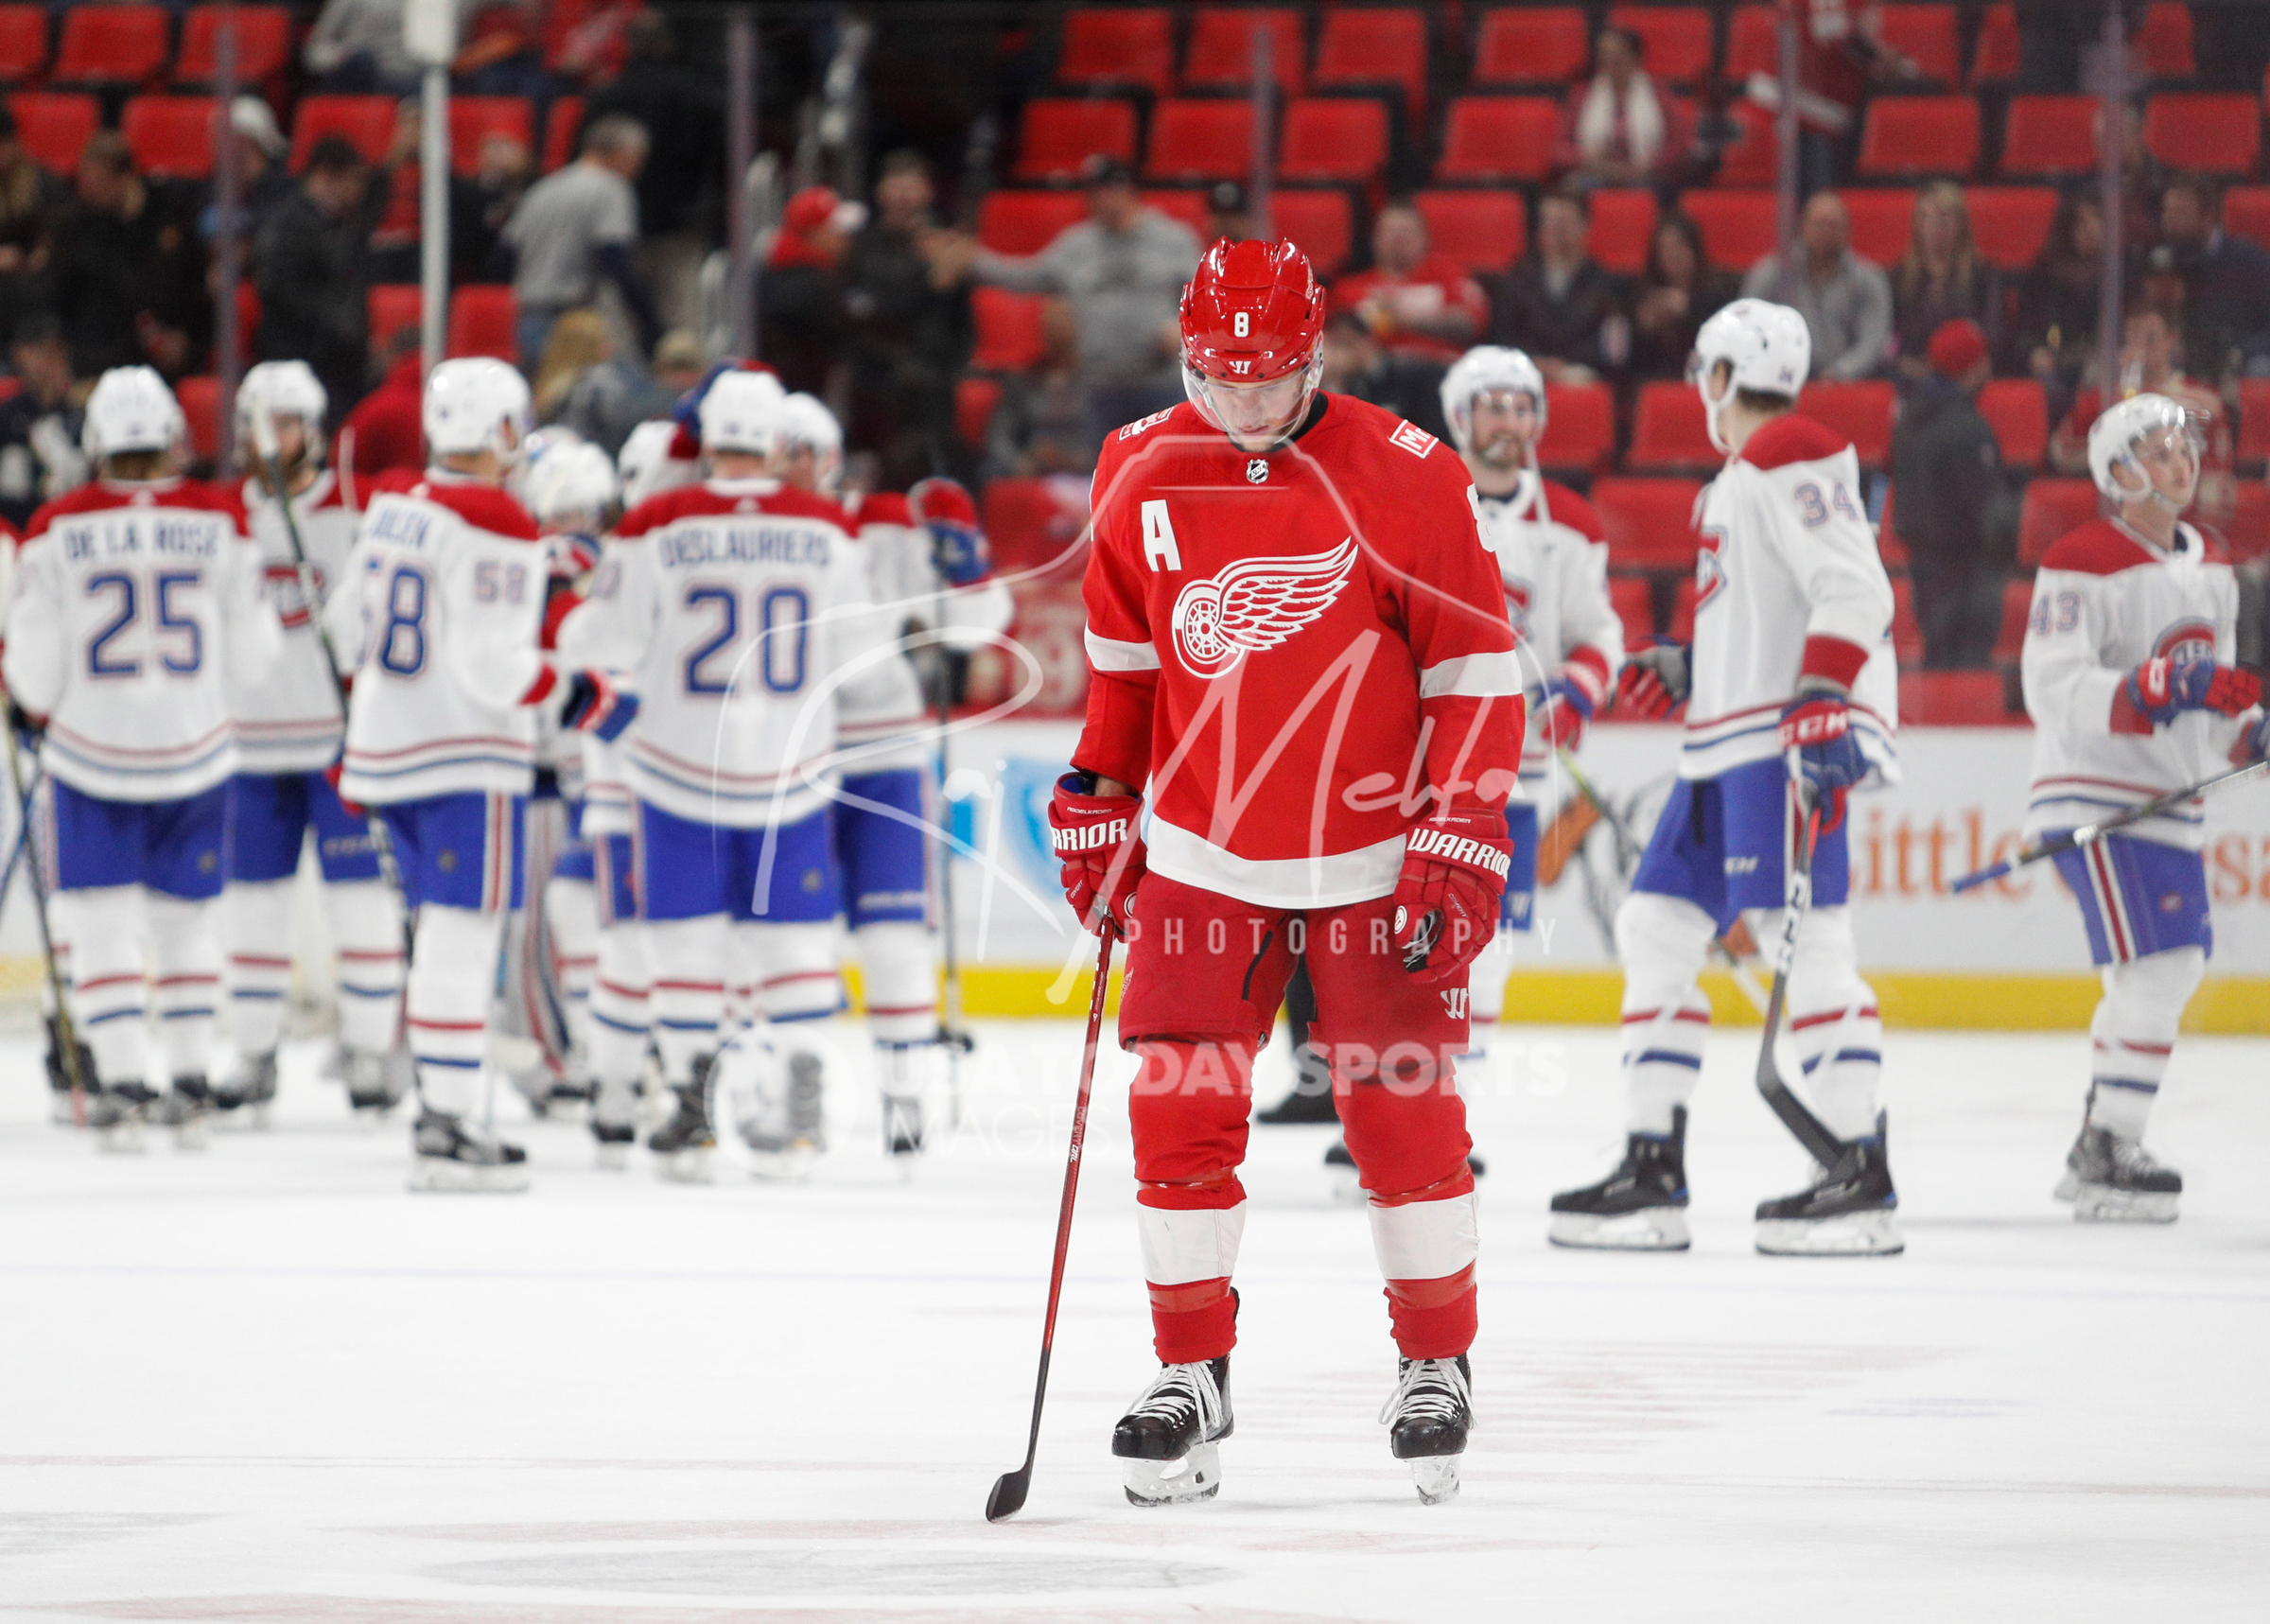 Apr 5, 2018; Detroit, MI, USA; Detroit Red Wings left wing Justin Abdelkader (8) looks down as the Montreal Canadiens celebrate behind him after the game at Little Caesars Arena. Mandatory Credit: Raj Mehta-USA TODAY Sports